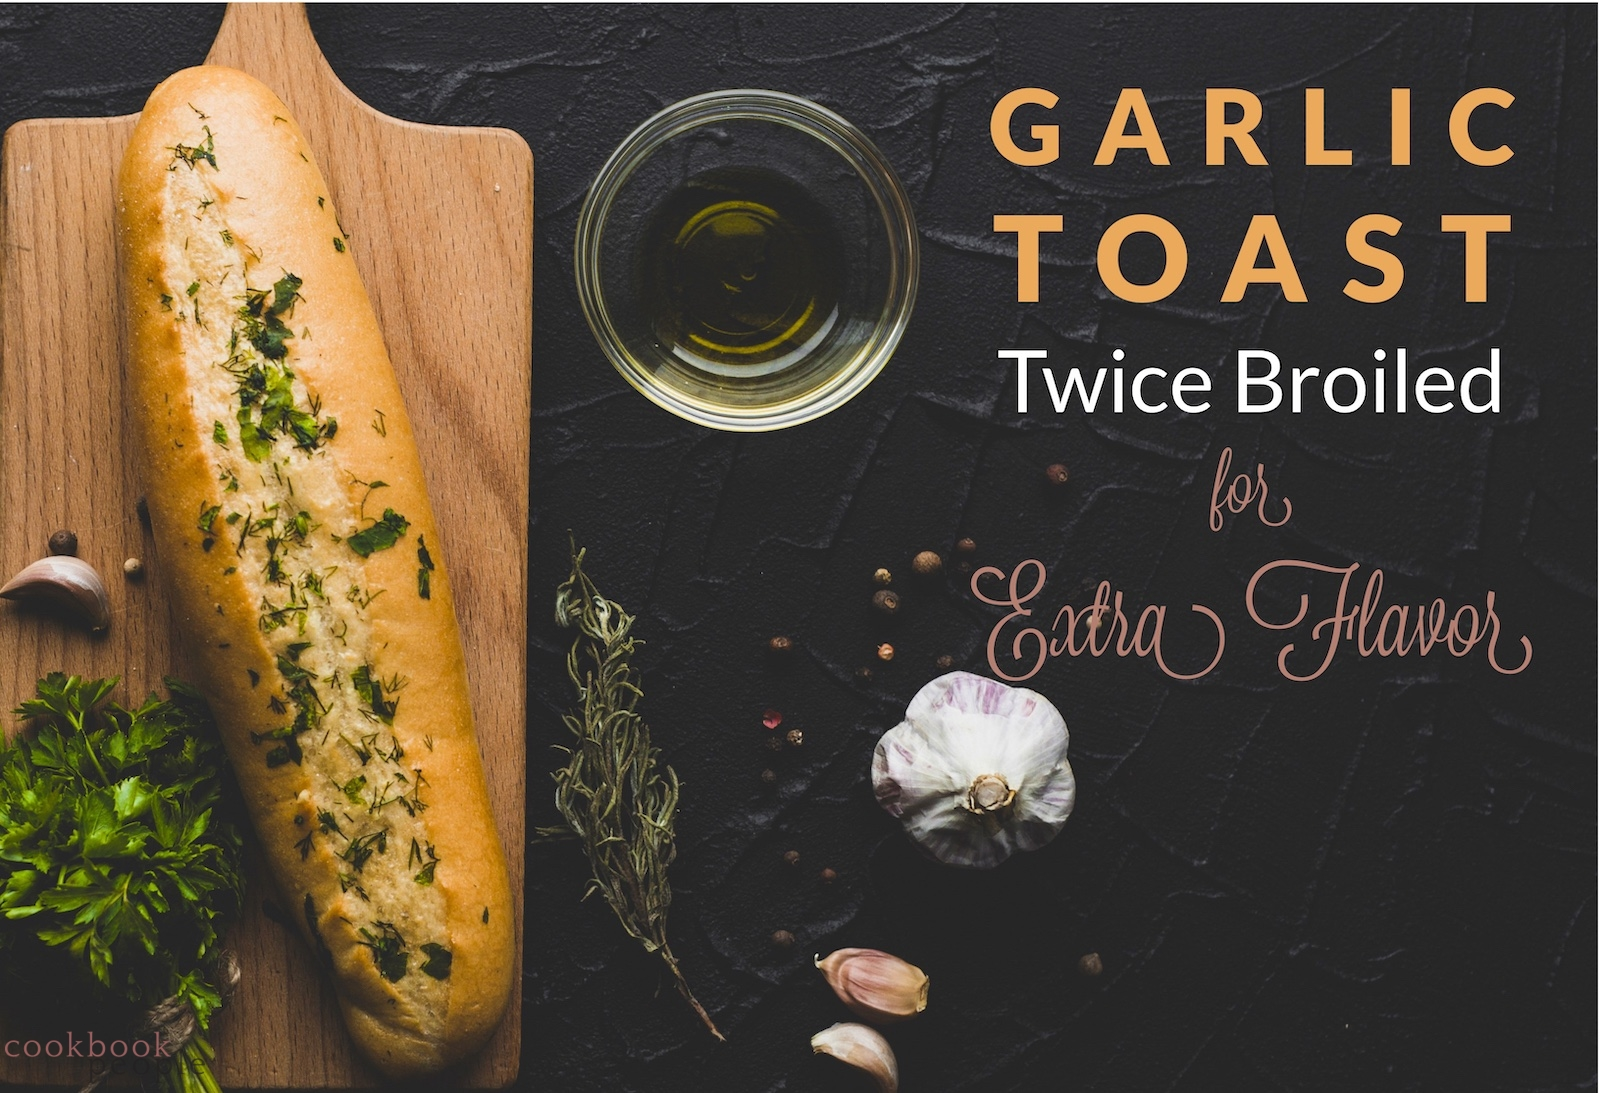 Garlic bread ingredients on black ground with text: Garlic Toast - Twice Broiled for Extra Flavor